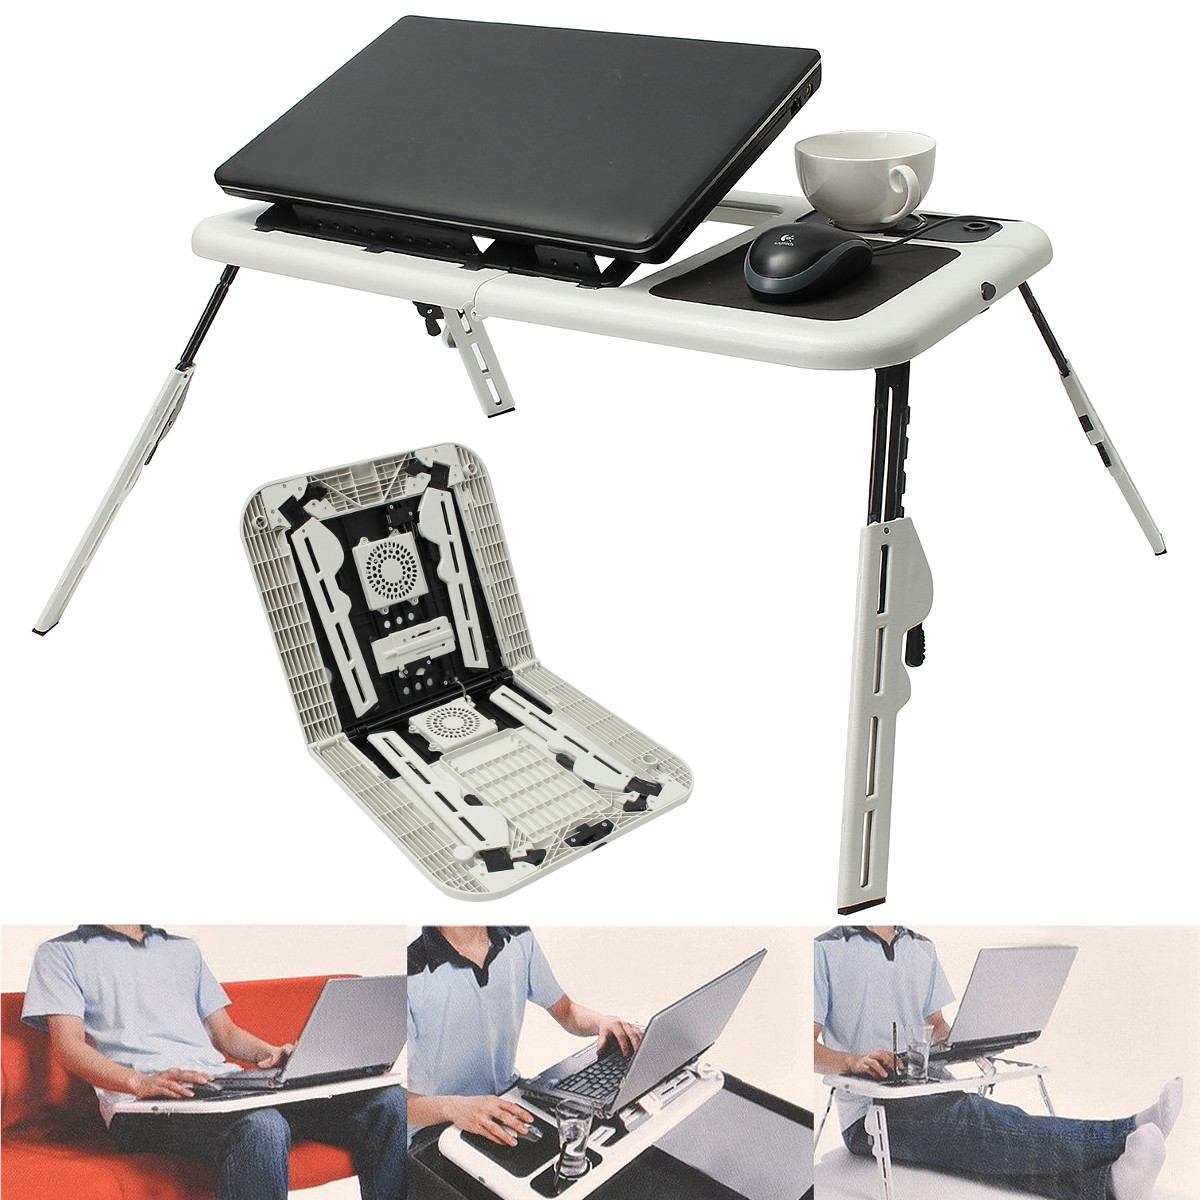 Folding Laptop Notebook Table Stand Tray Desk Holder With 2 USB Cooling Fans For Sofa Bed Lawn